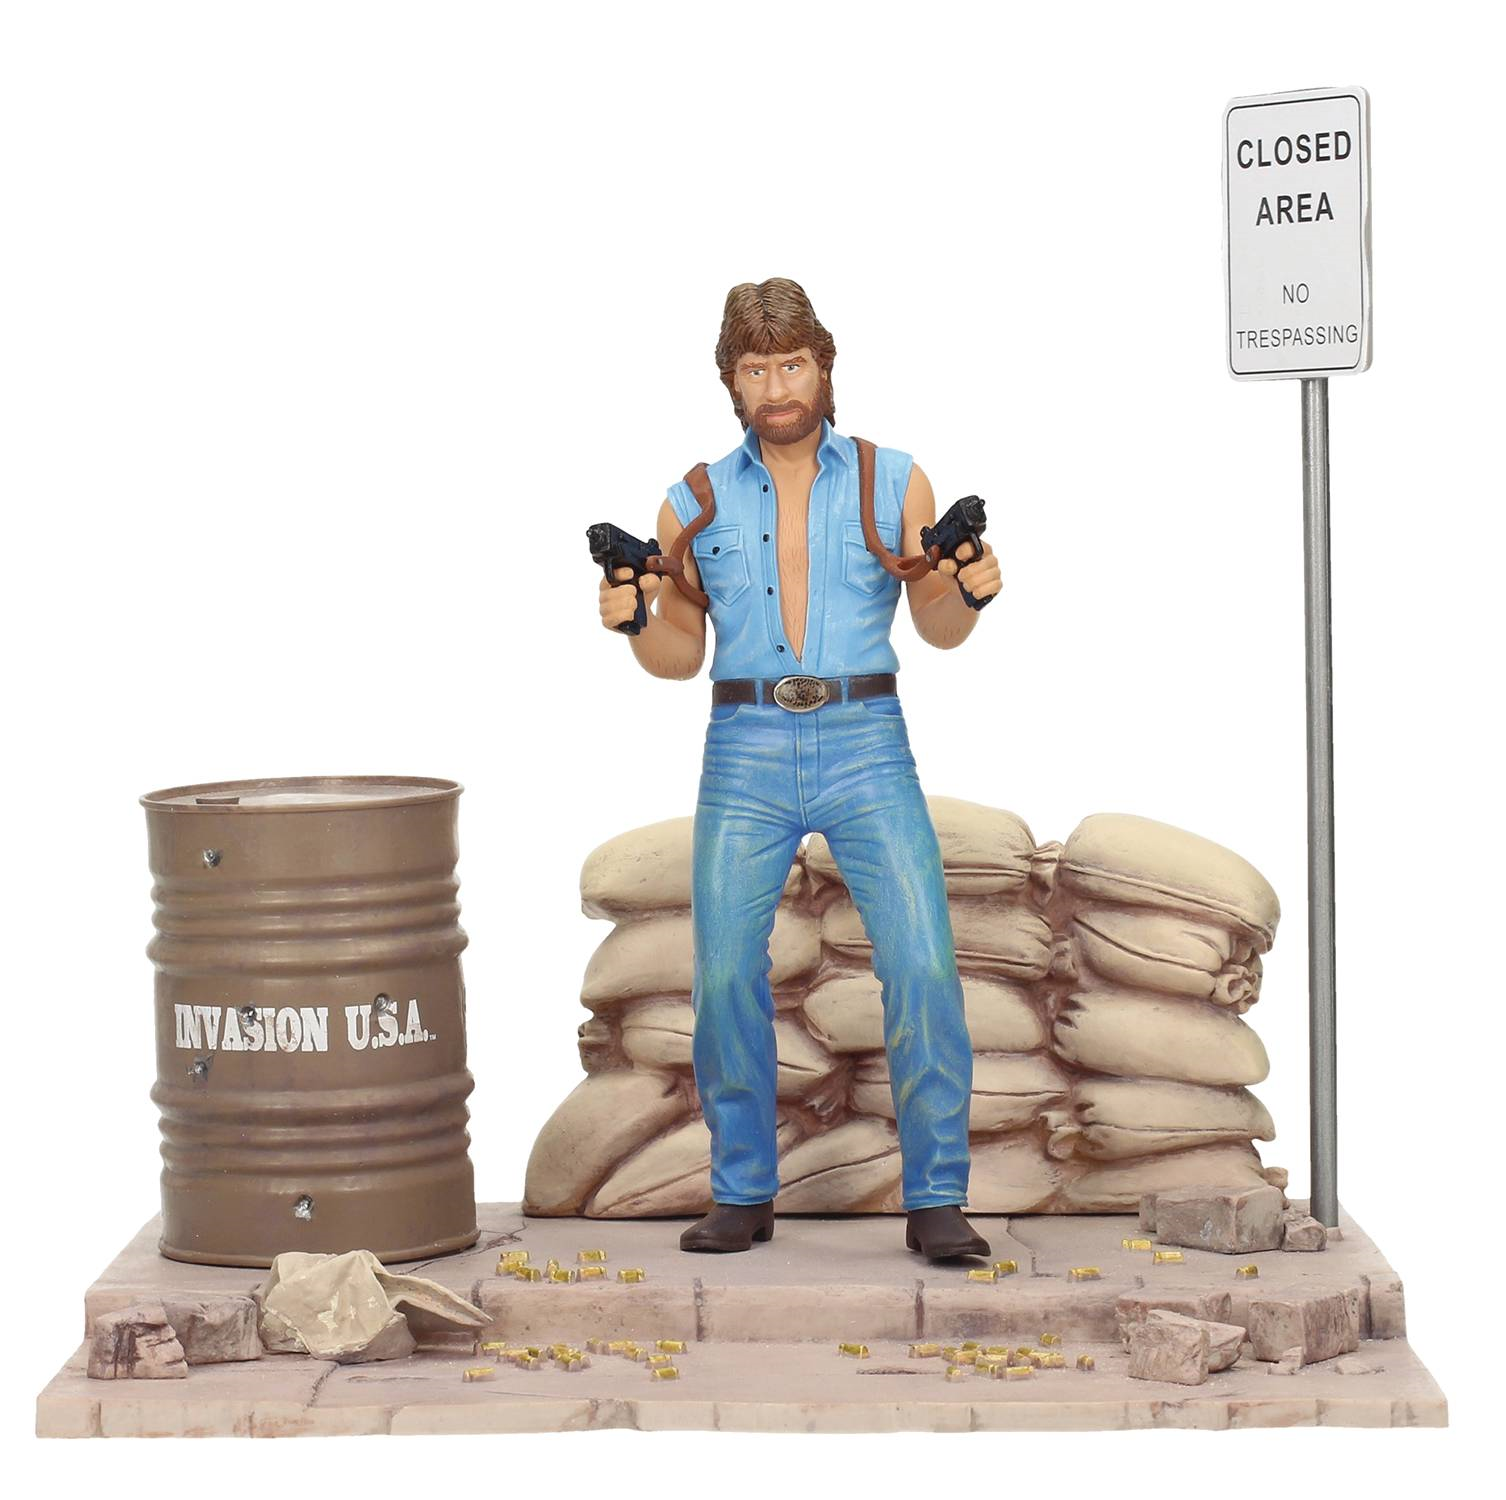 Movie icons invasion der usa matt jäger 7  - figur mit diorama